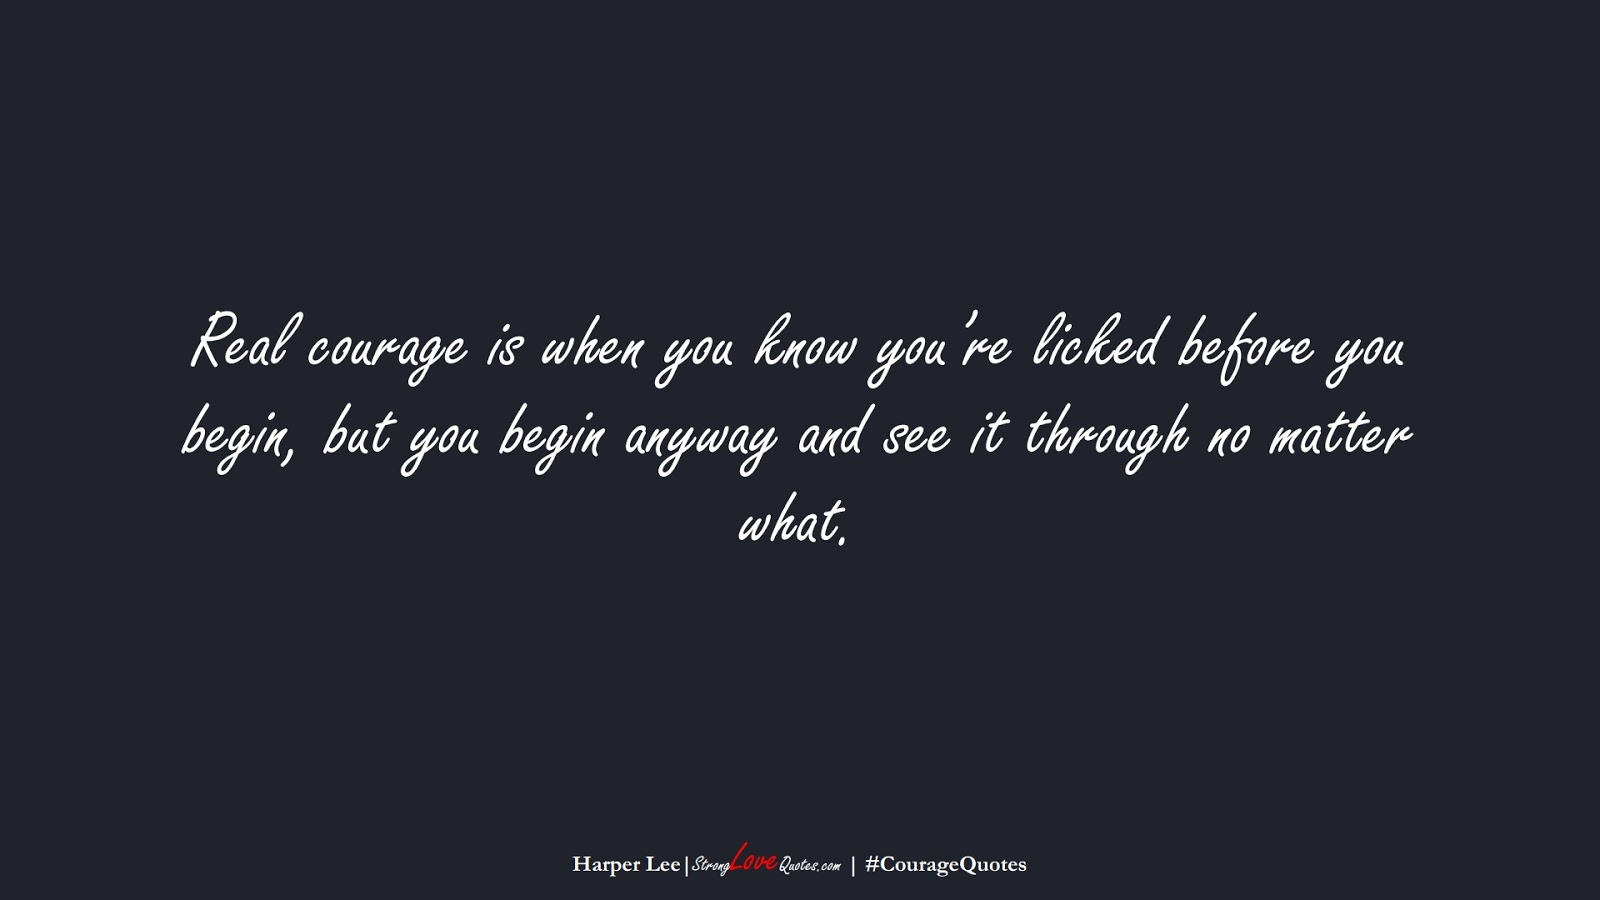 Real courage is when you know you're licked before you begin, but you begin anyway and see it through no matter what. (Harper Lee);  #CourageQuotes